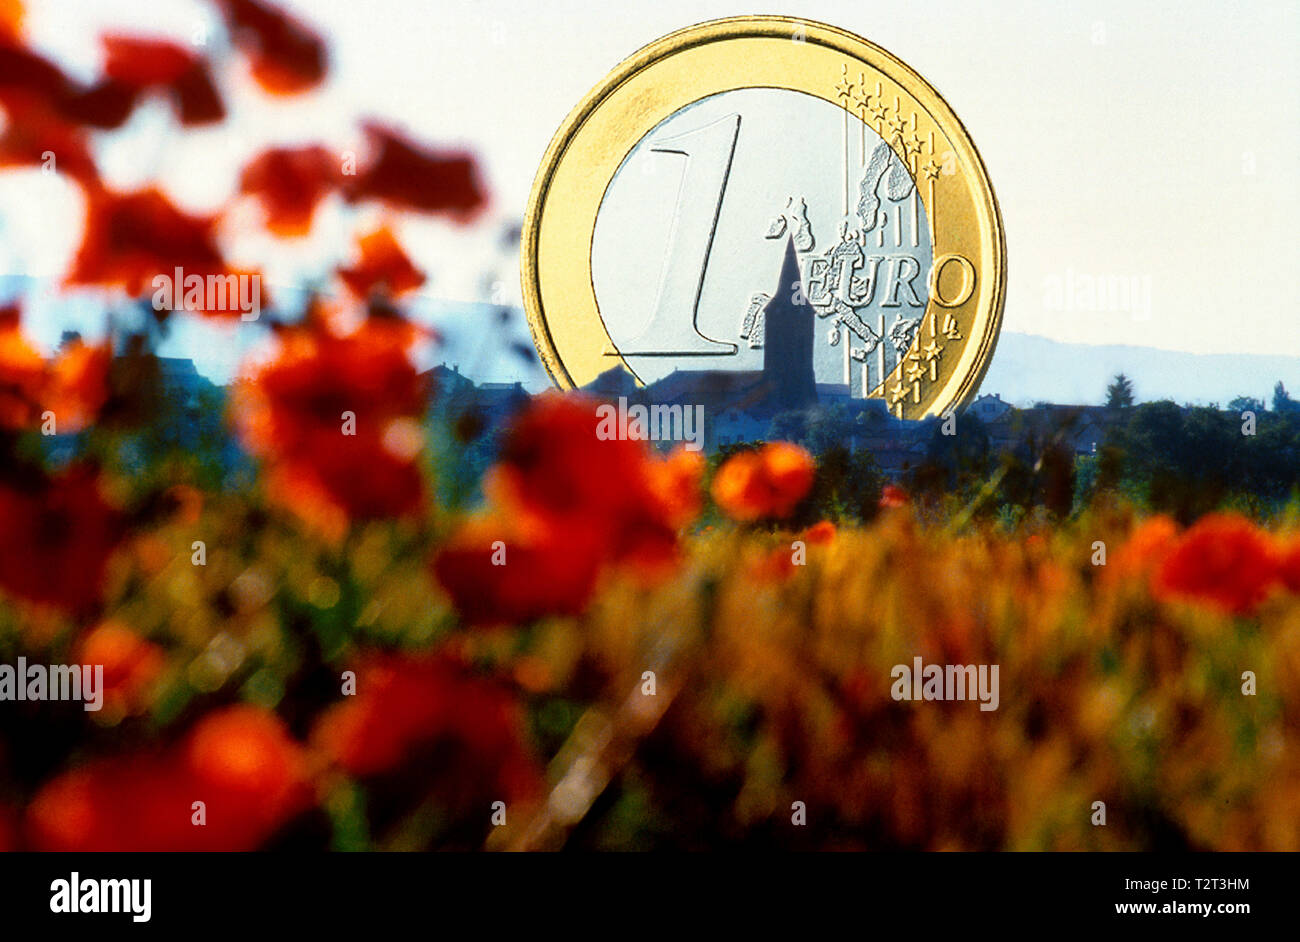 1 euro coin behind a rural landscape with a village (concept) - Stock Image